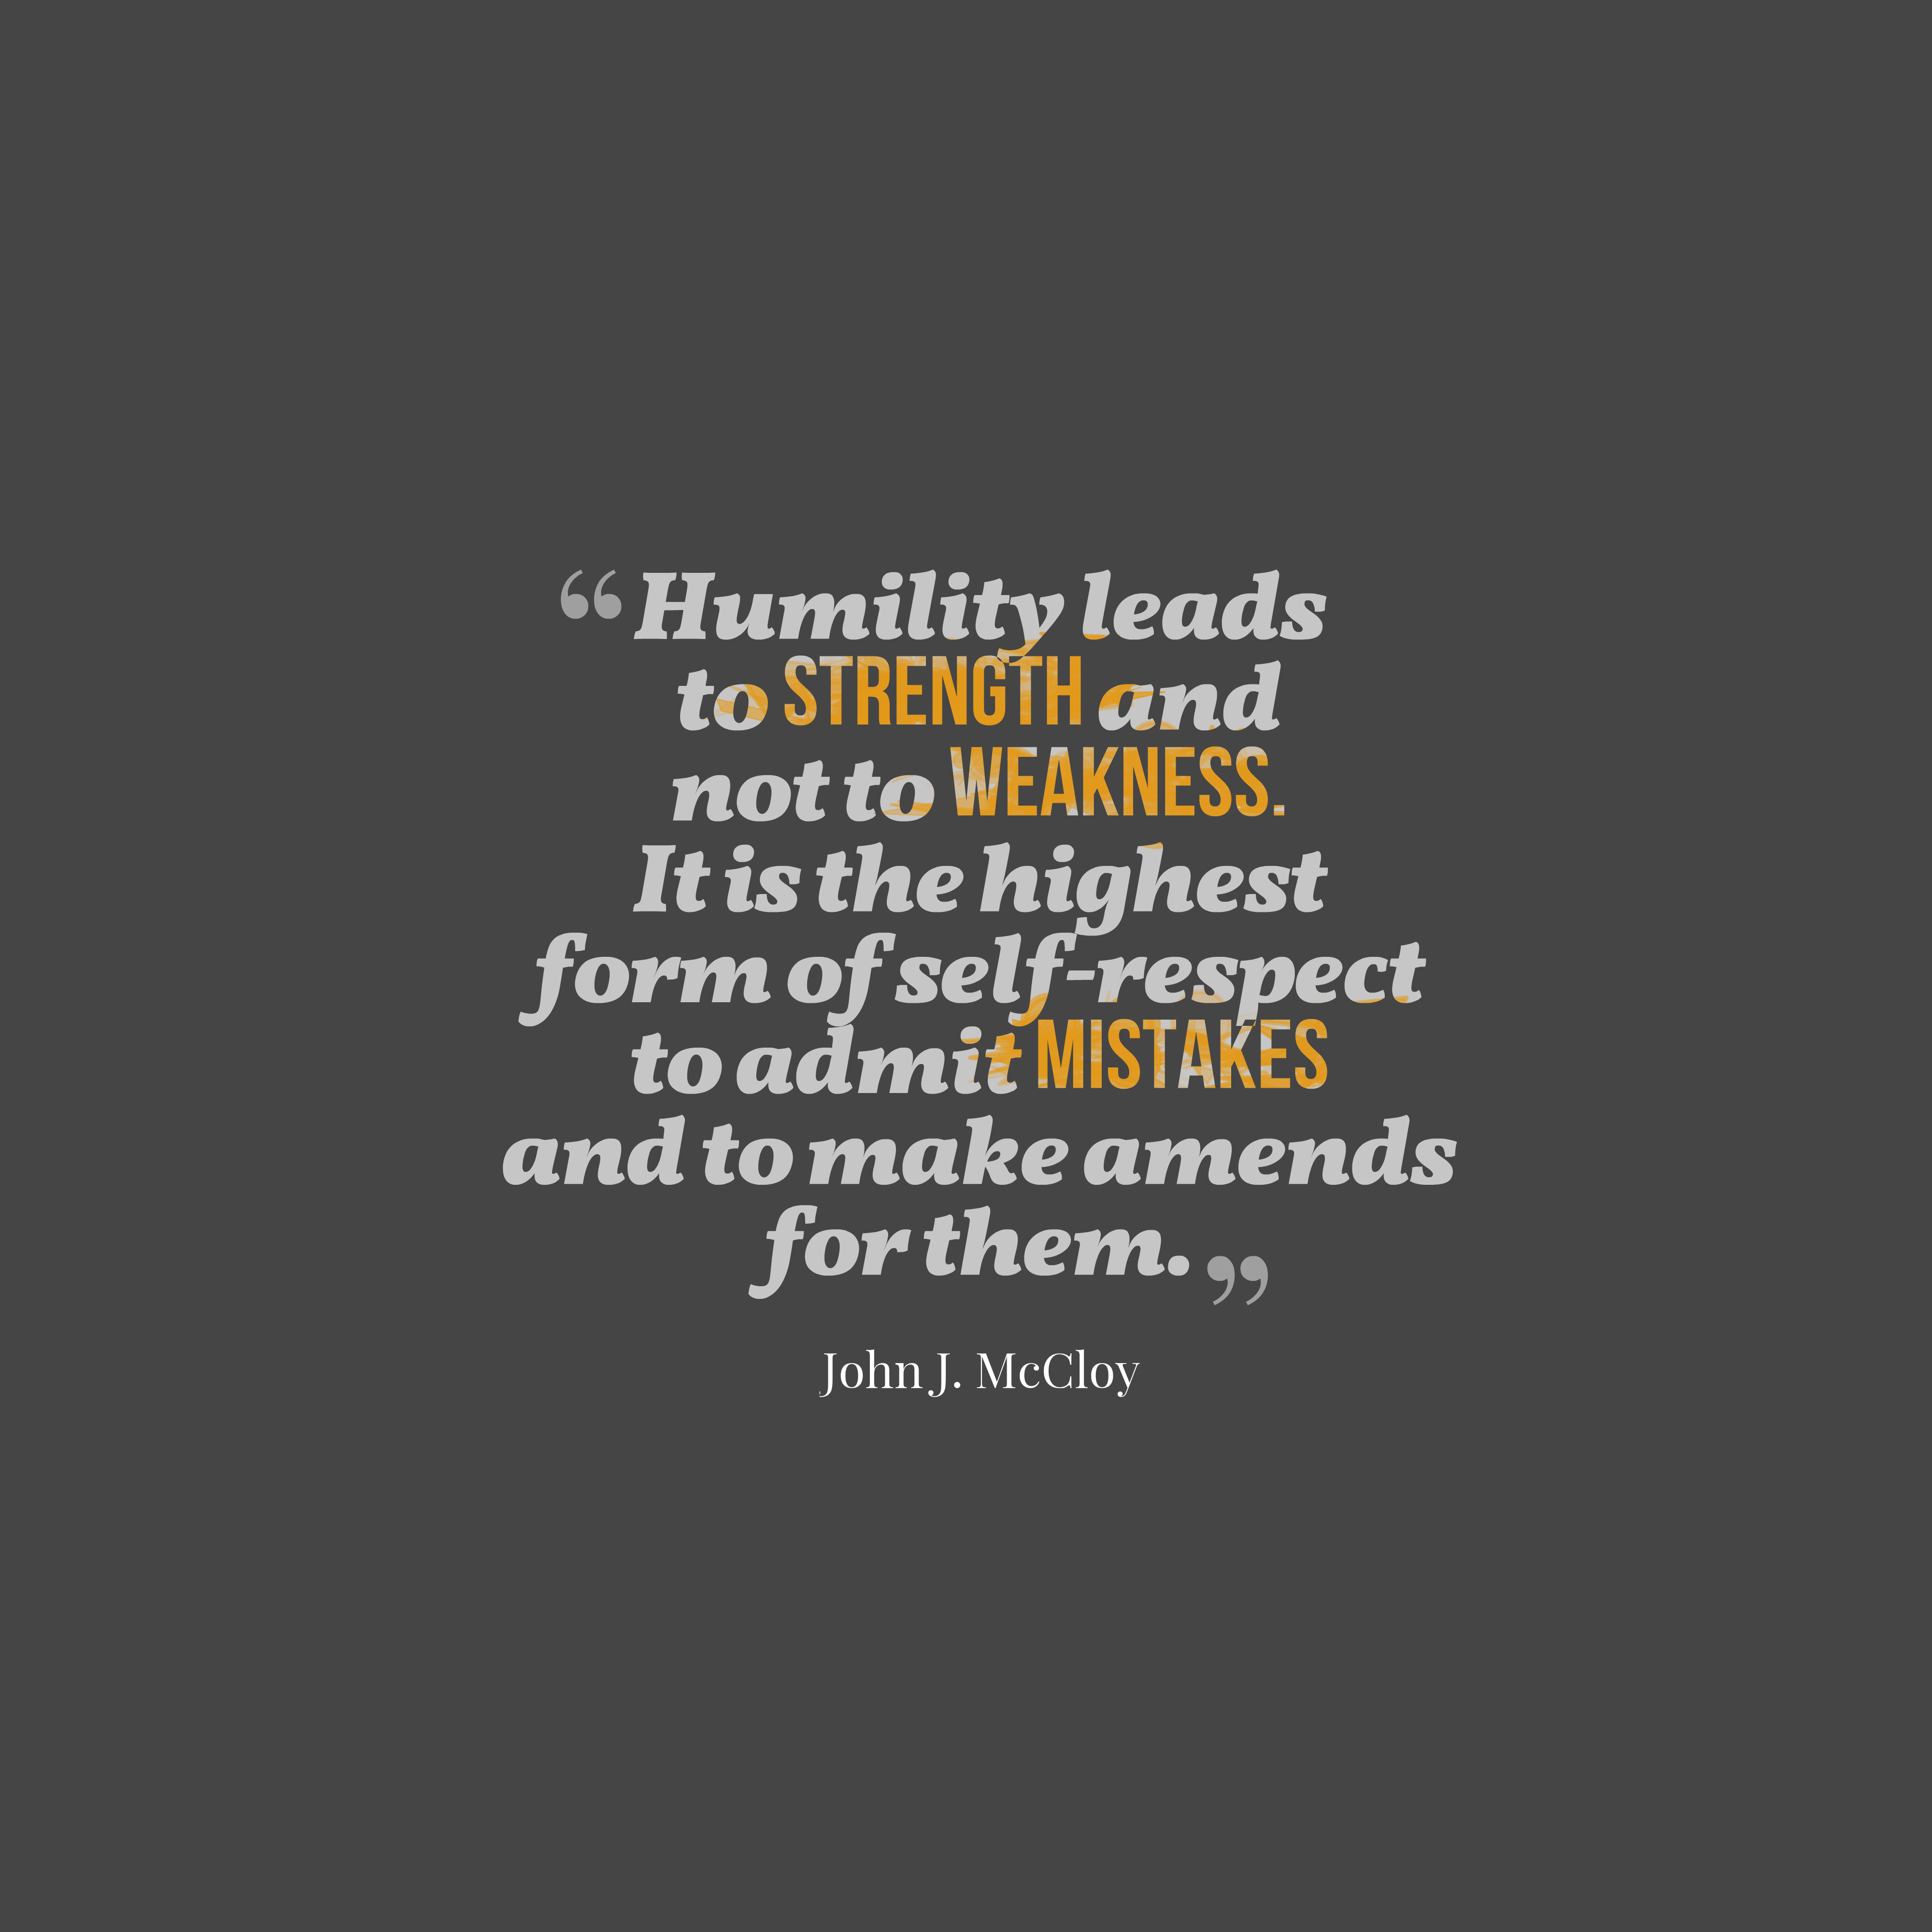 Quotes image of Humility leads to strength and not to weakness. It is the highest form of self-respect to admit mistakes and to make amends for them.